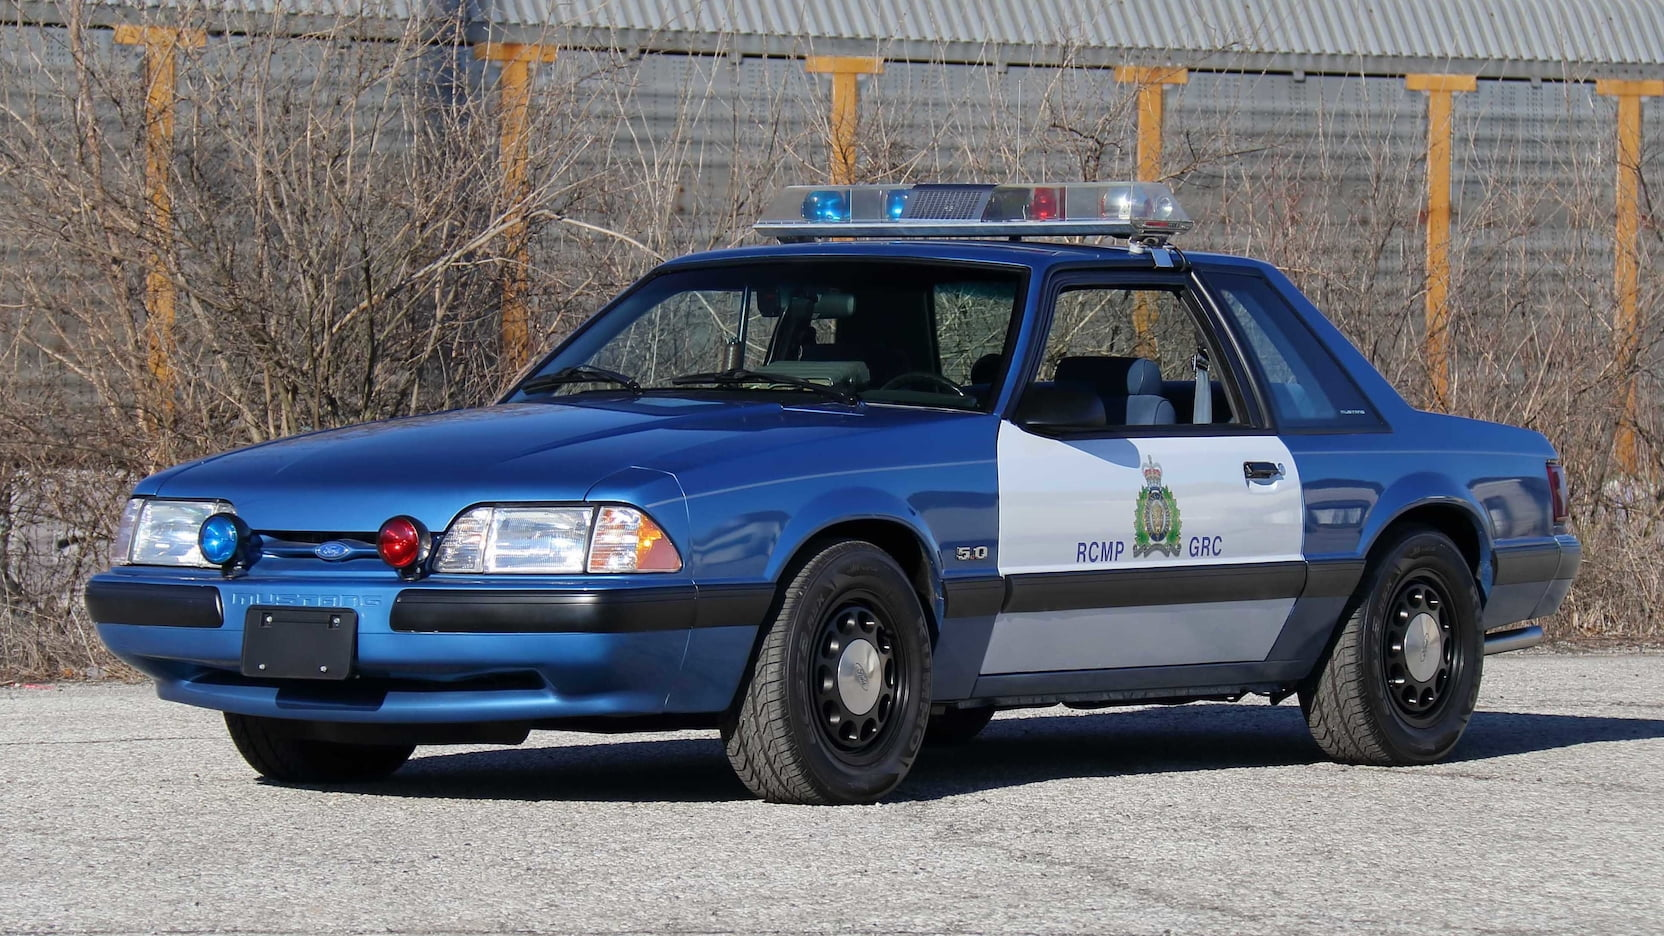 This rare Canadian police Mustang could become your next trusty steed thumbnail